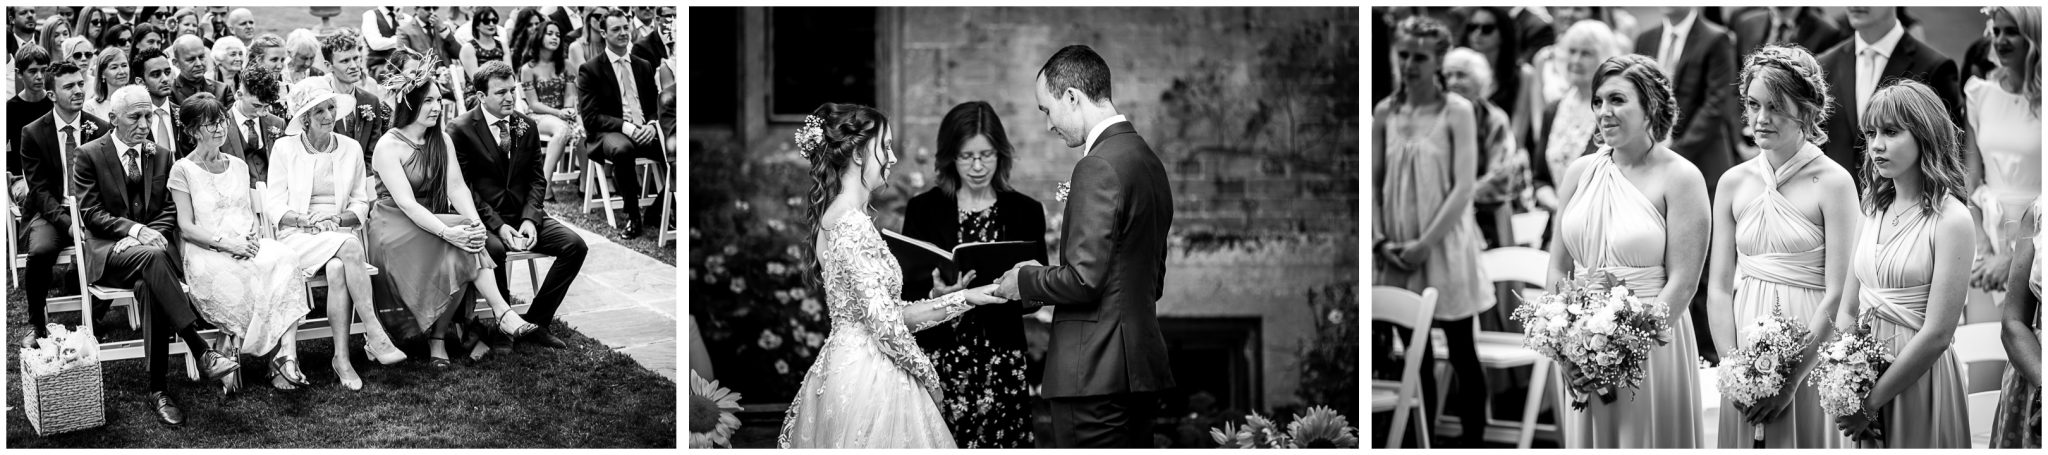 Black and white images of wedding guests watching the bride and groom get married